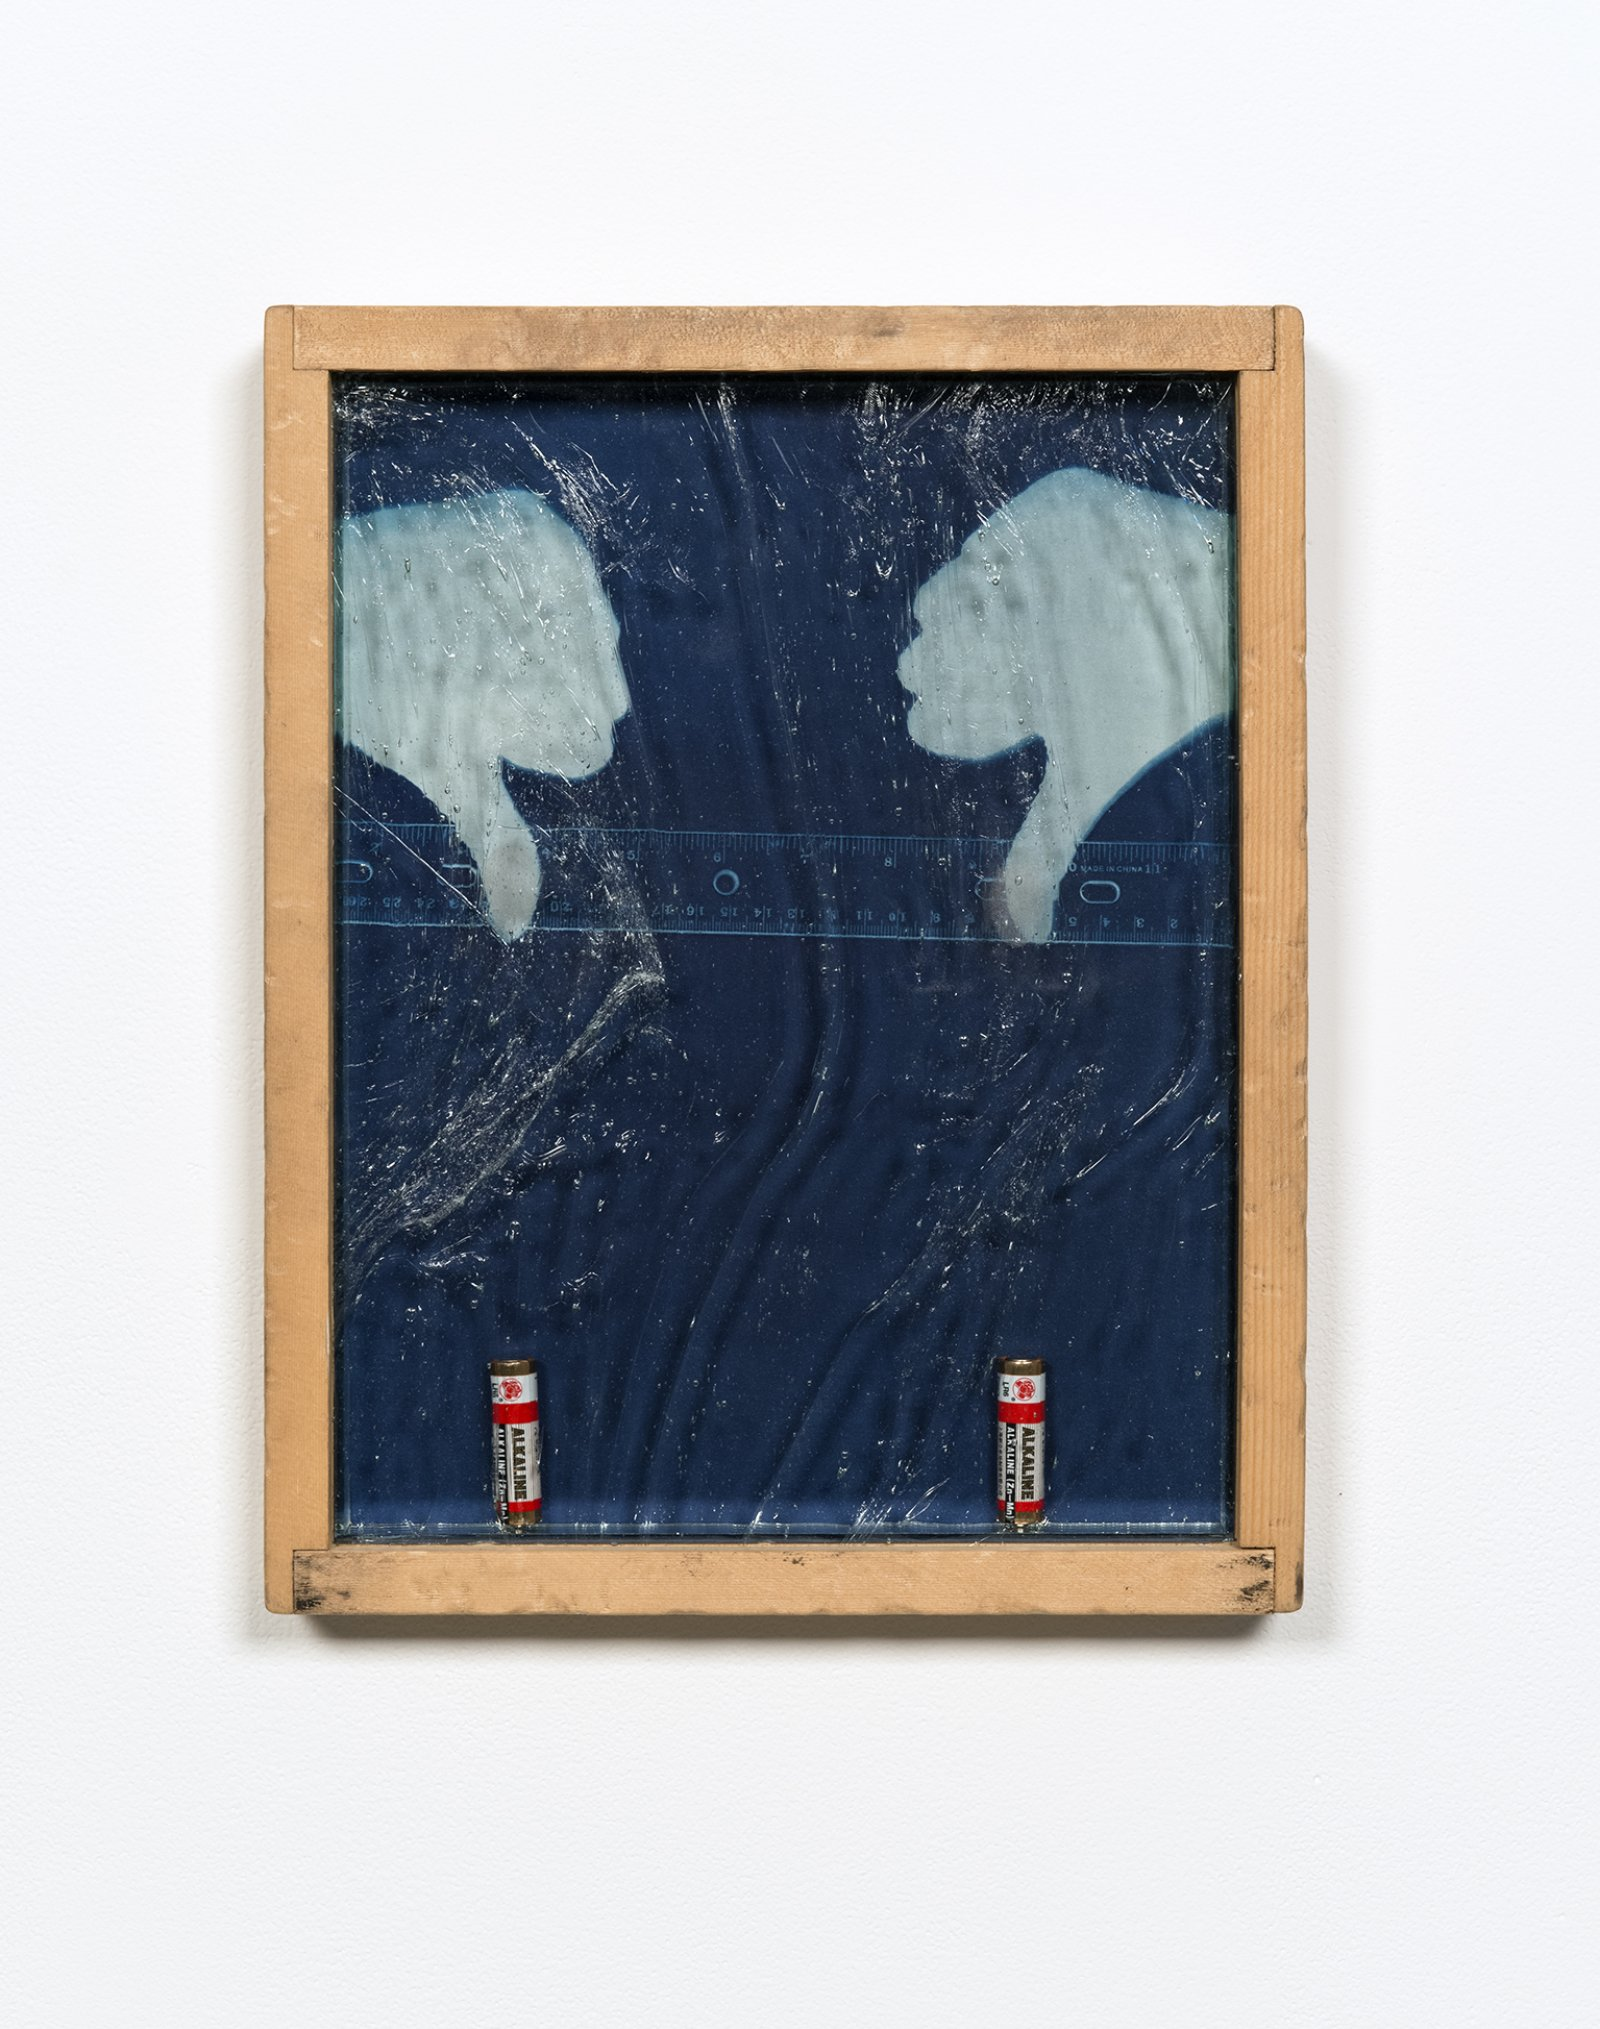 "Julia Feyrer, Rule of thumbs: Double Negative, 2012, antiqued/distressed pine wood frame (beaten with chain, orange pekoe stain), cyanotype on watercolour paper, two dead aa alkaline batteries, magnets, mirror inset, ""alte deutsch"" architectural glass, thumb fingerprints dusted with bi-chromatic fingerprint powder, 15 x 12 in. (39 x 30 cm)"